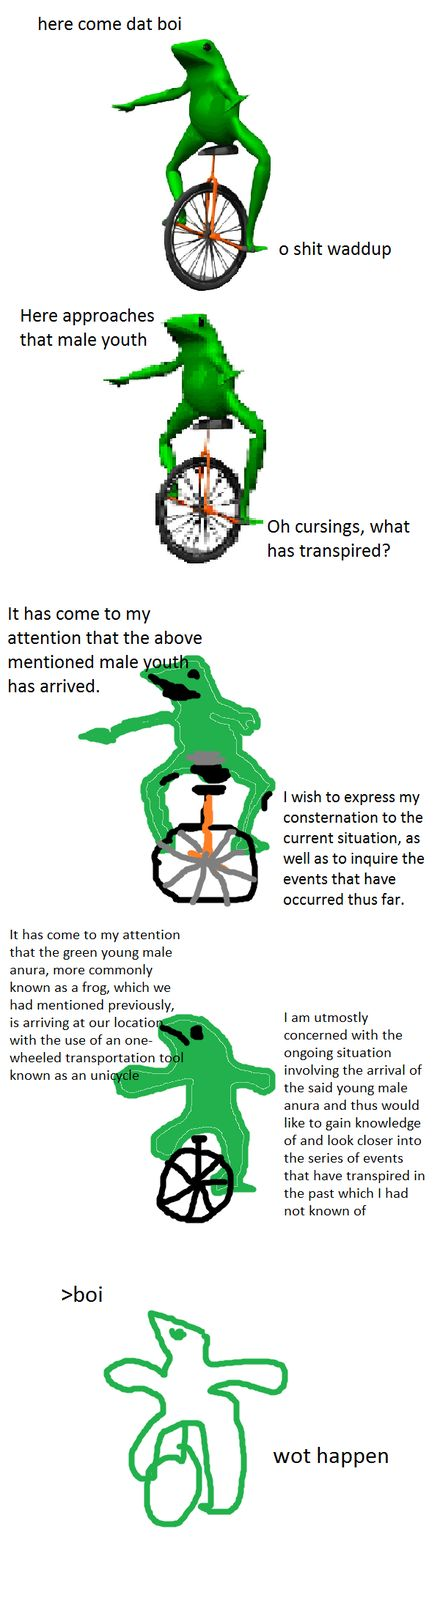 dat boi increasingly verbose<<< I FOUND THE NAME OF THE MEME